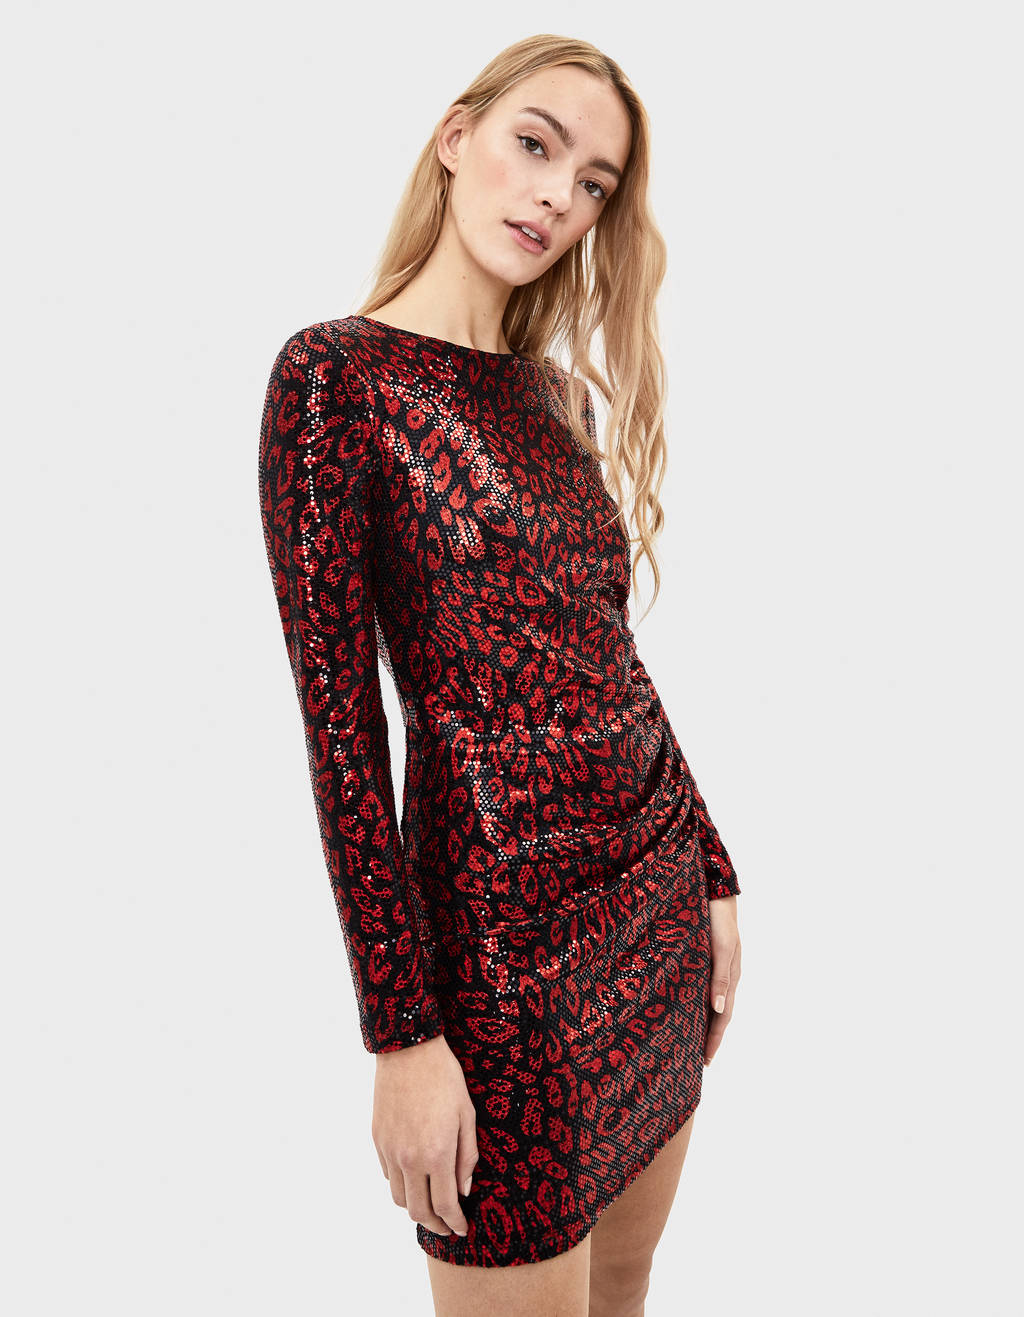 Leopard dress with sequins